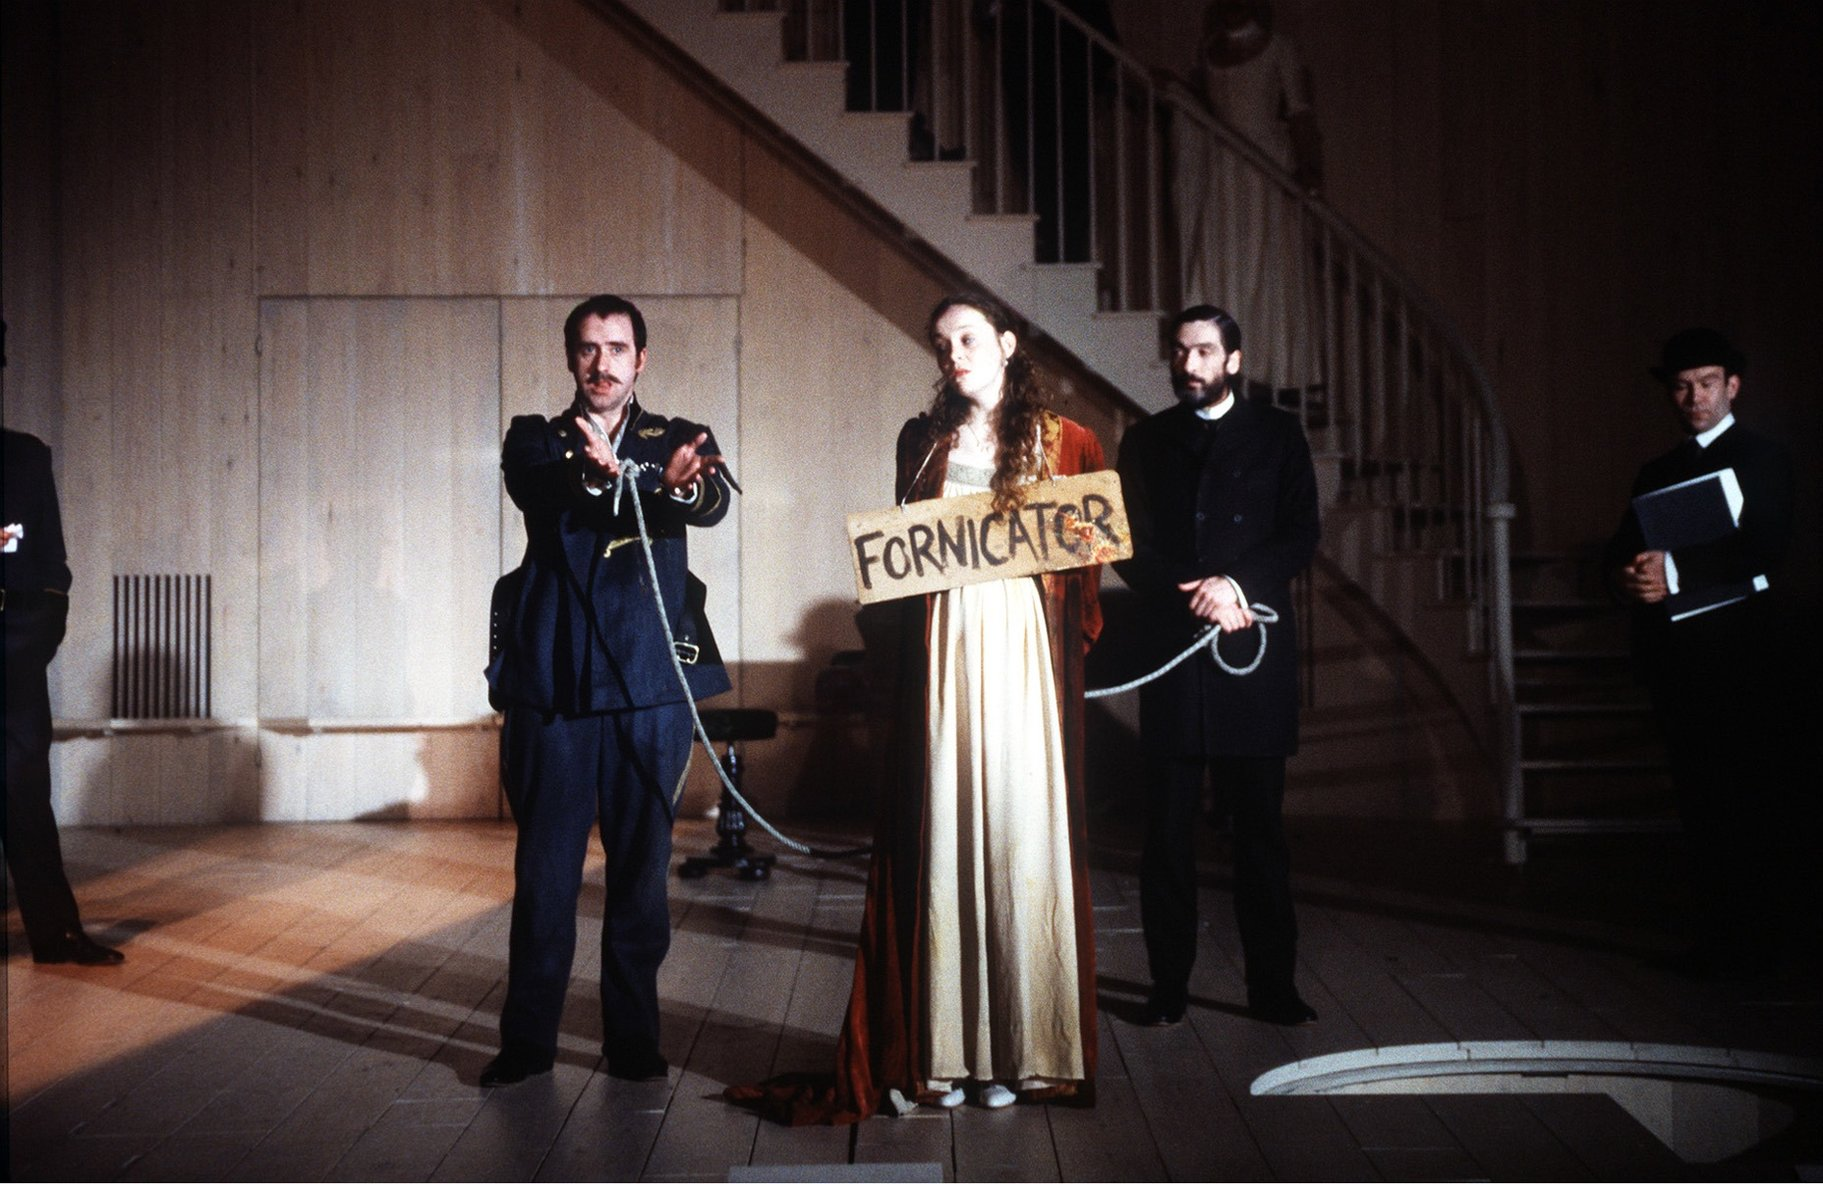 A woman in shackles with a sign saying 'Fornicator'